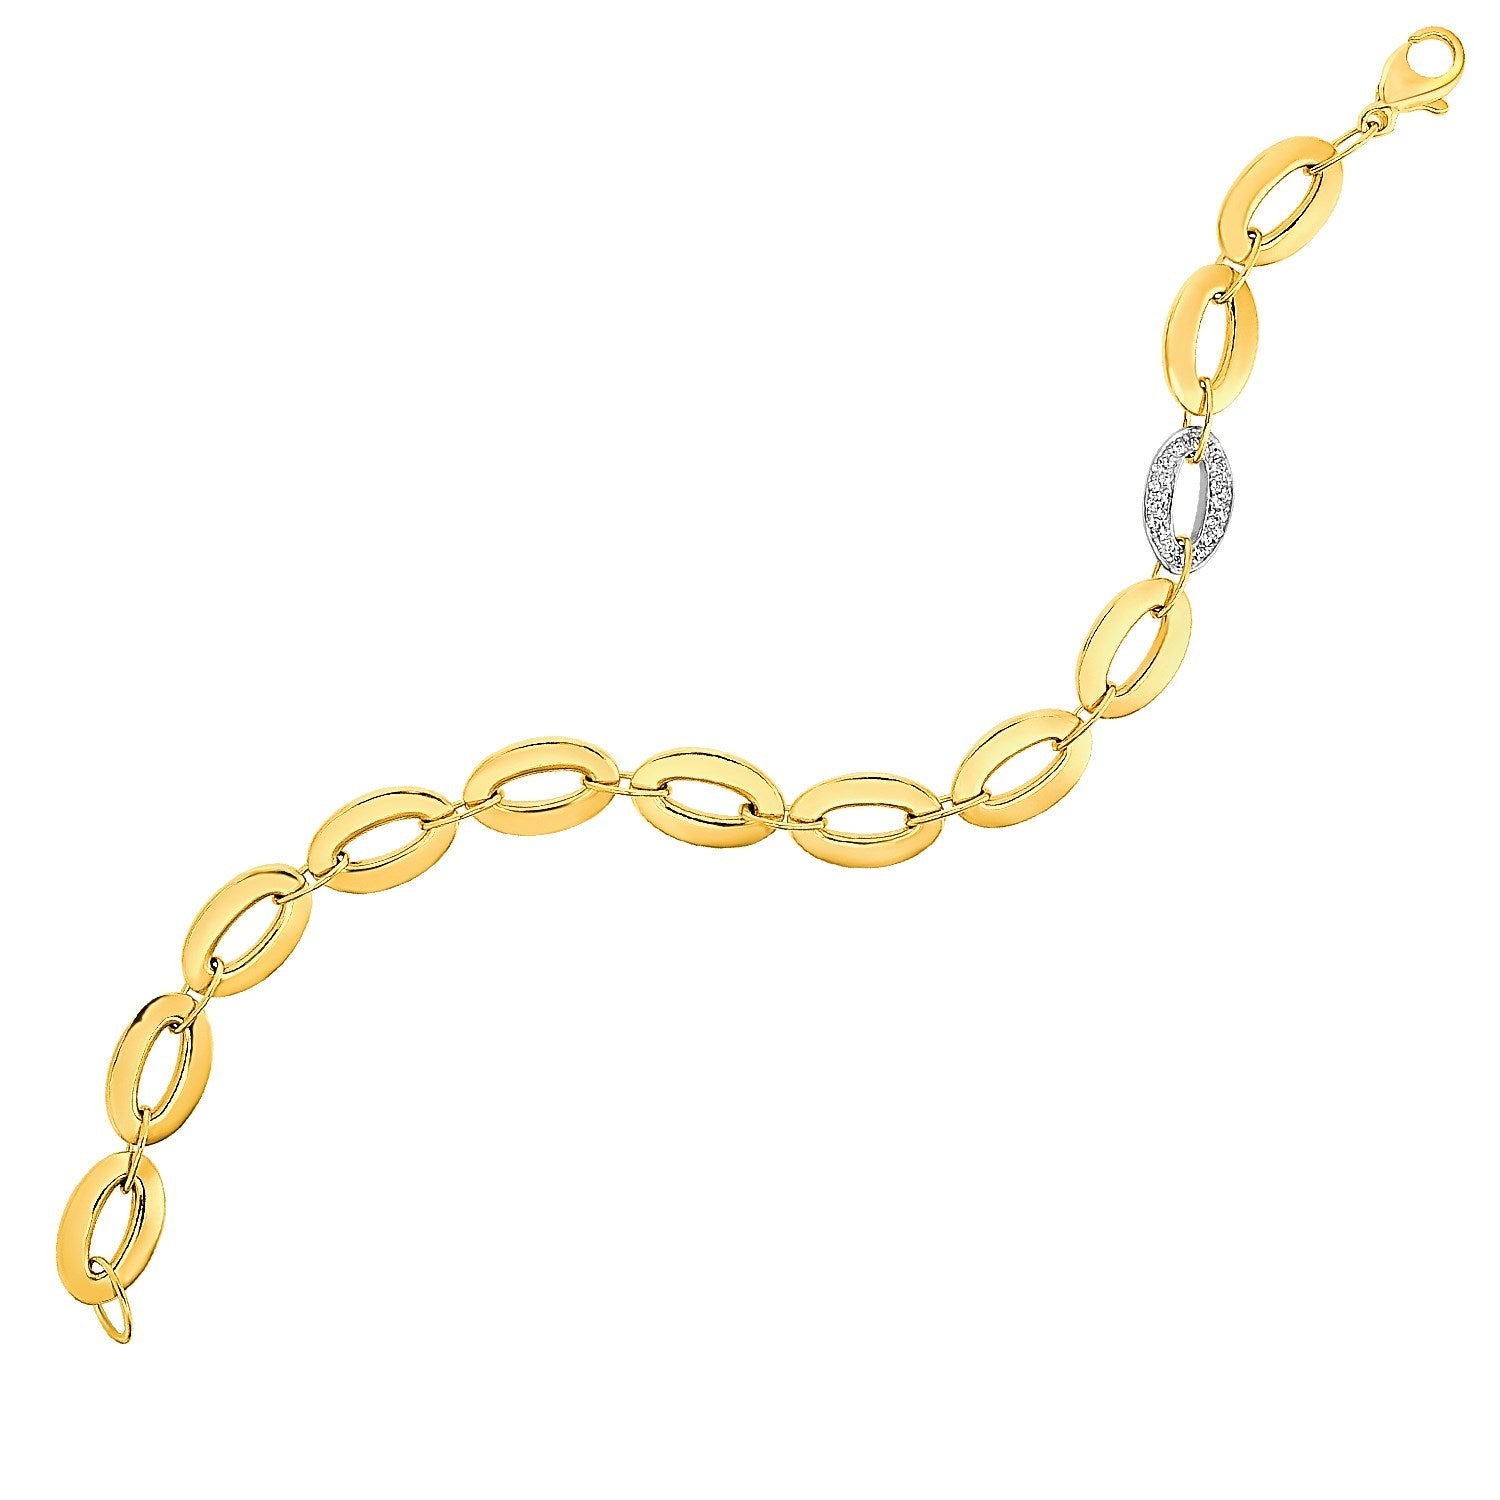 Unique Modern Monaco Style 14K Yellow Gold and Diamond Oval Link Bracelet (1/10 ct. tw.)